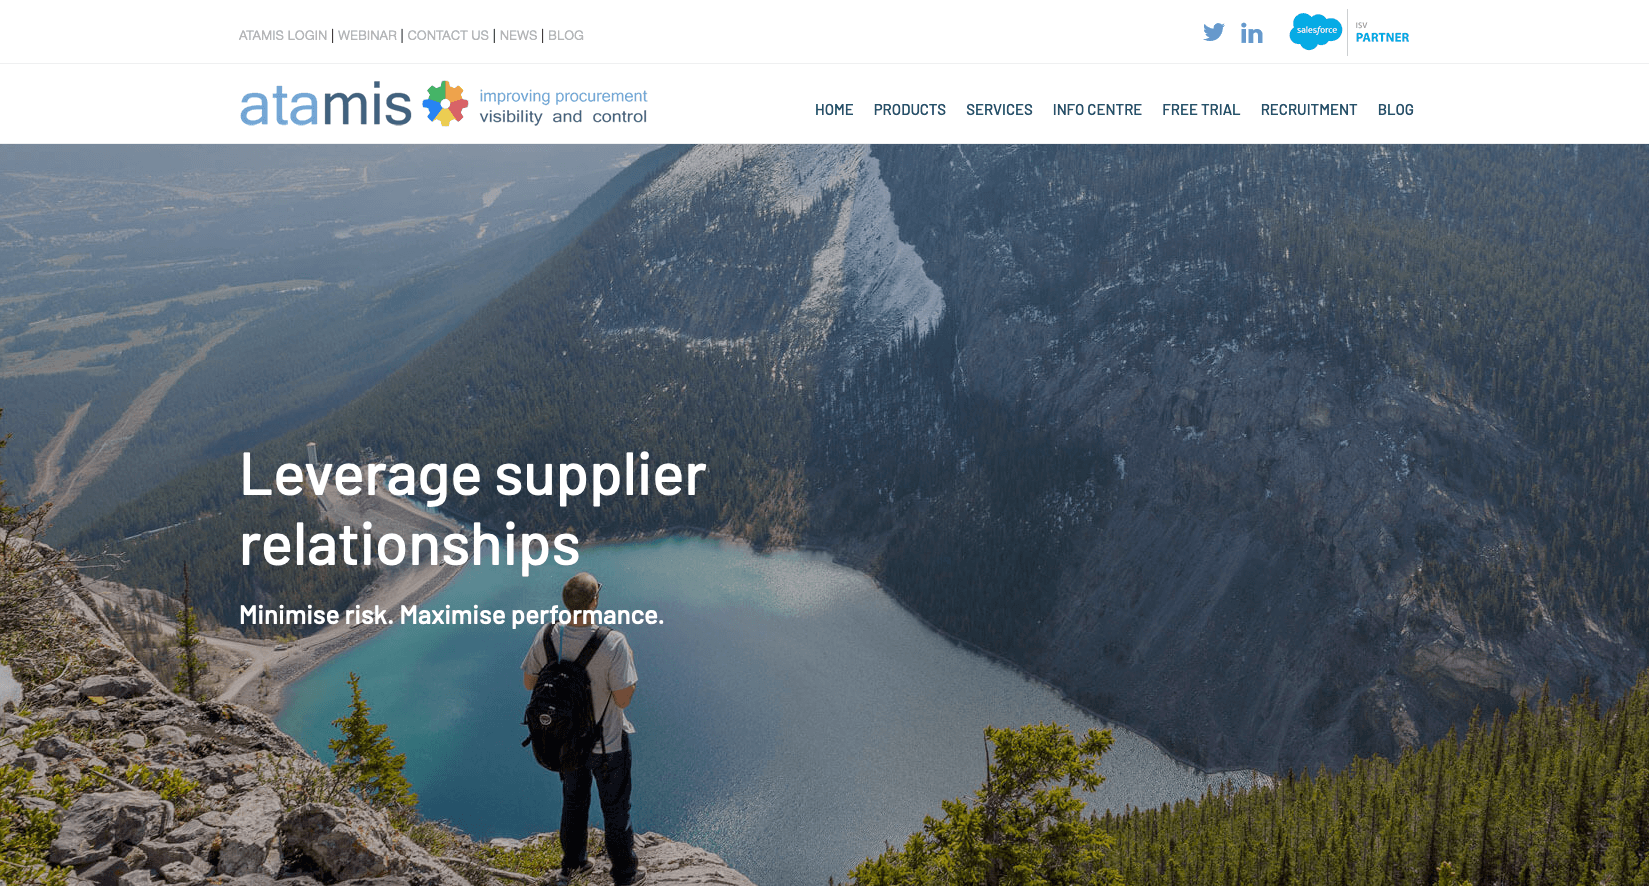 Website of the Month: Atamis